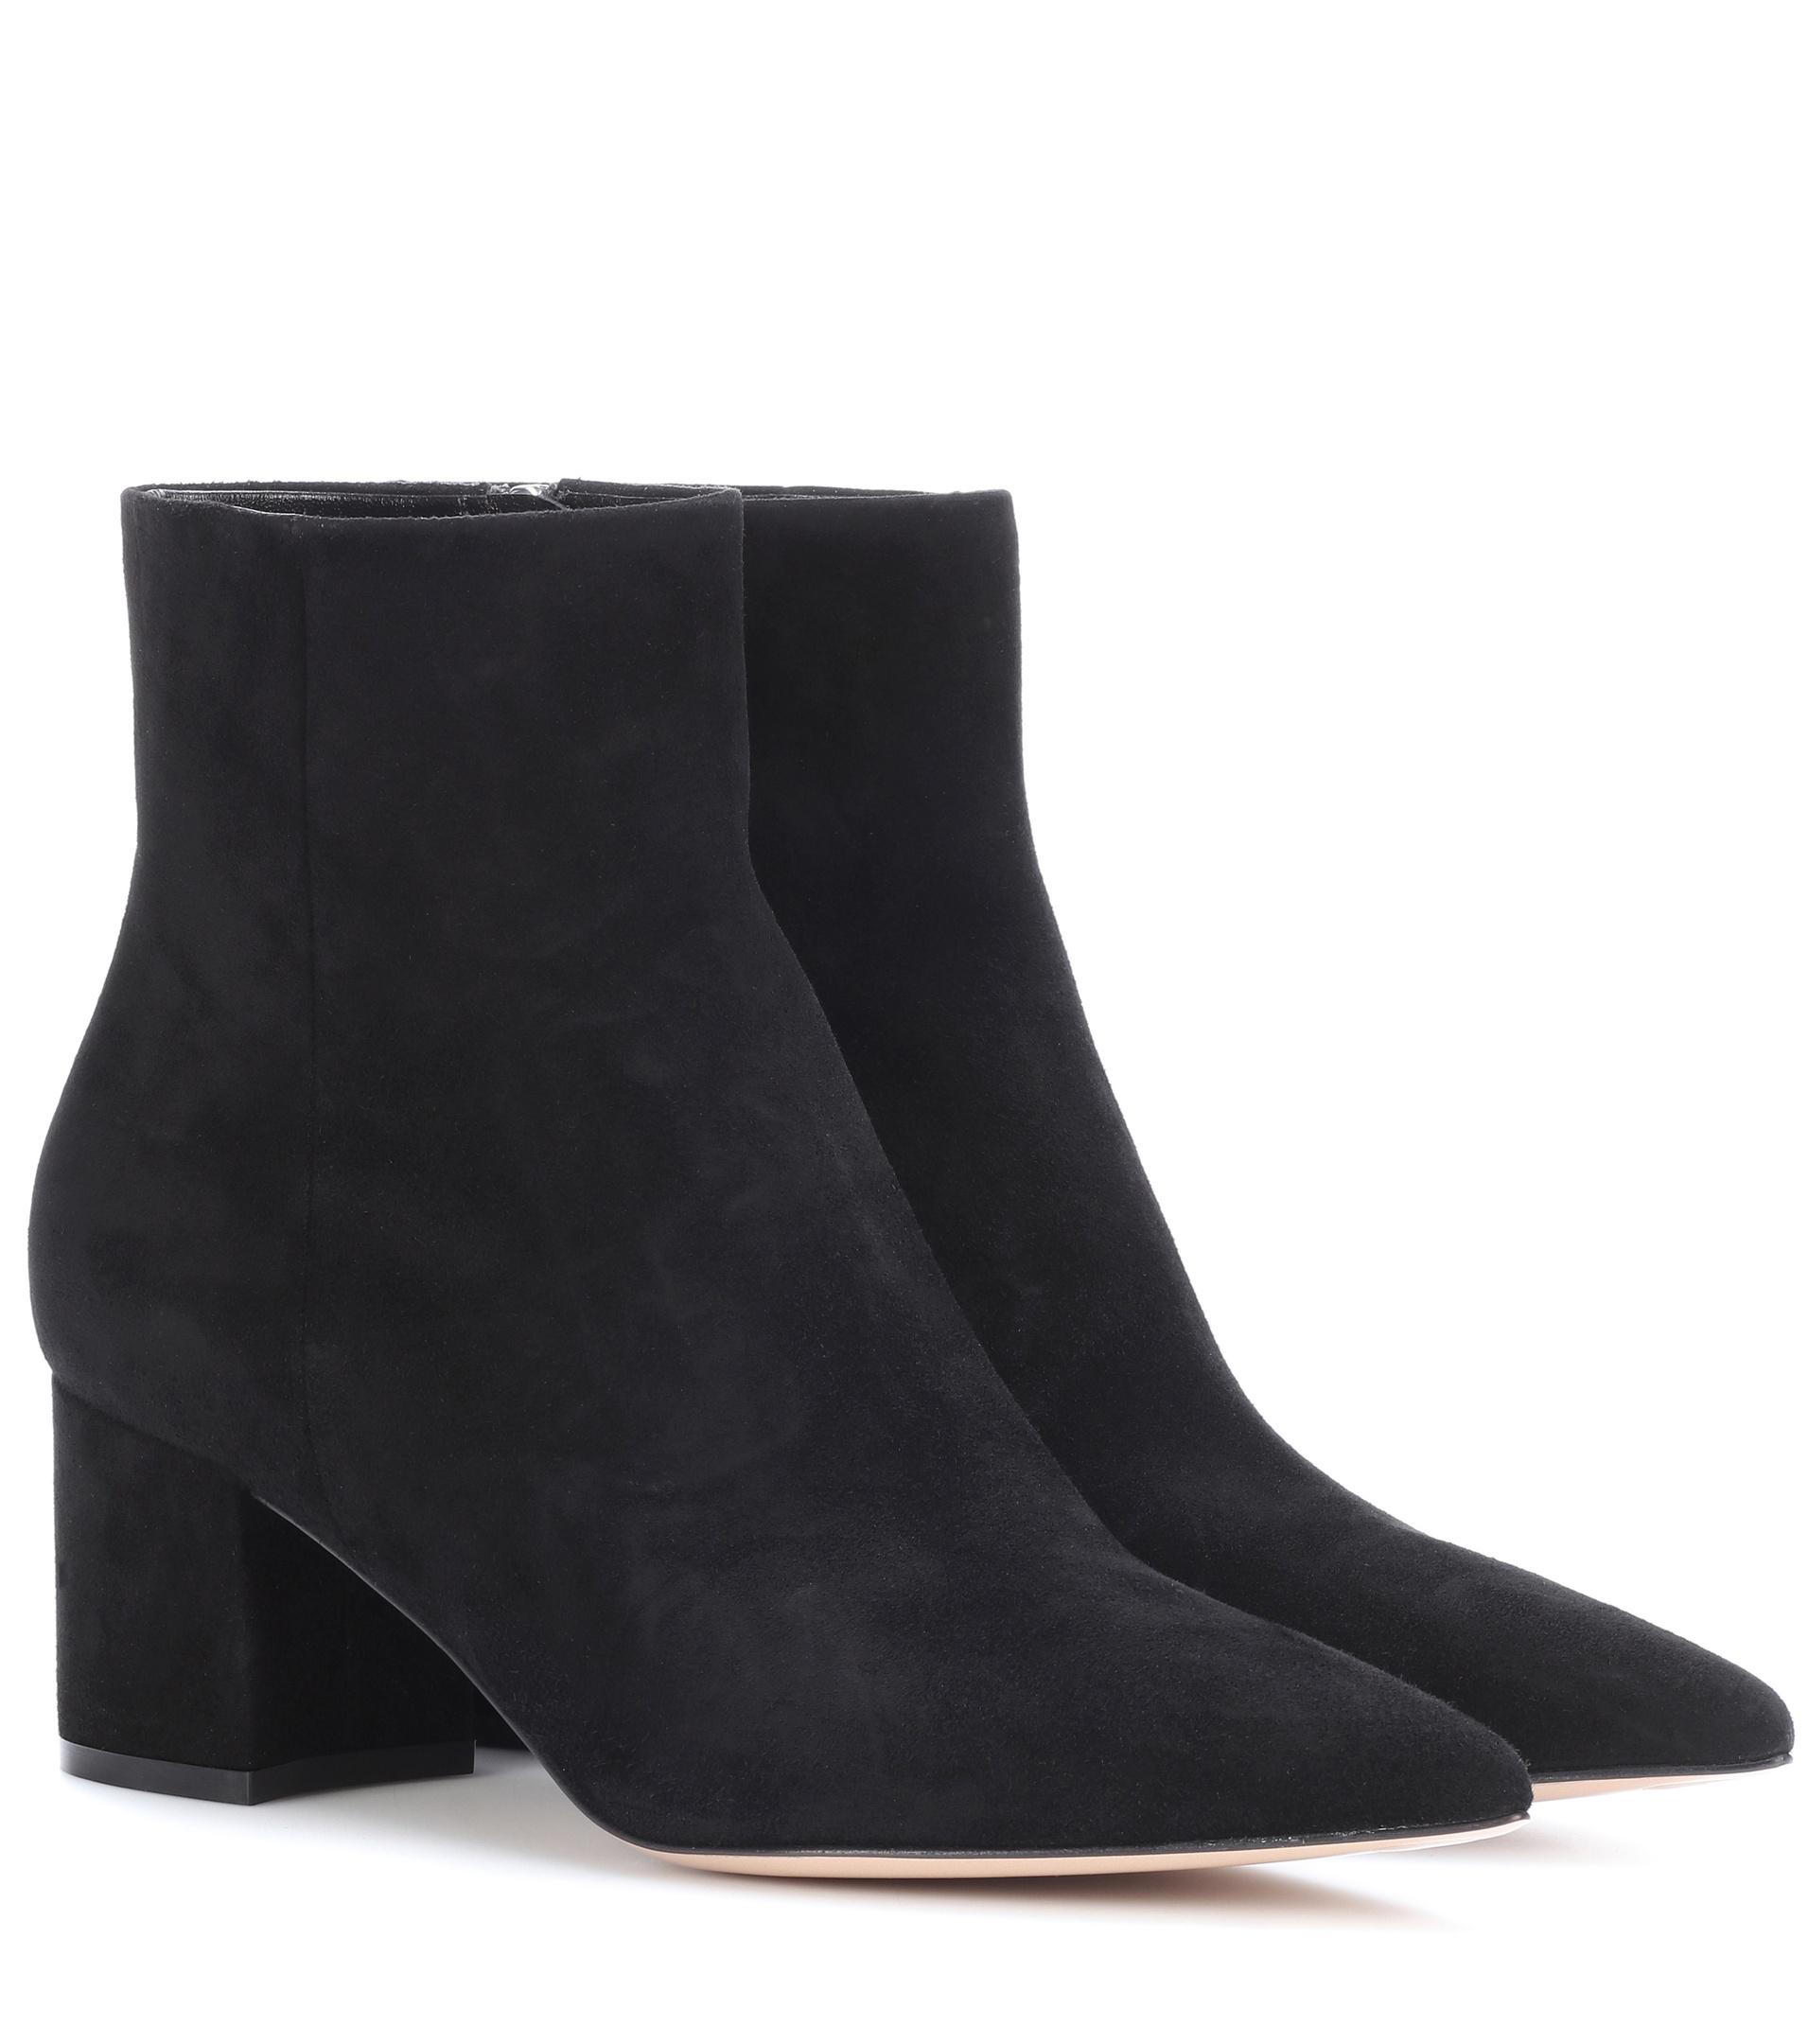 Gianvito Rossi Exclusive to mytheresa.com – Piper 60 suede ankle boots outlet ebay store cheap online hot sale buy cheap get authentic mT4stp